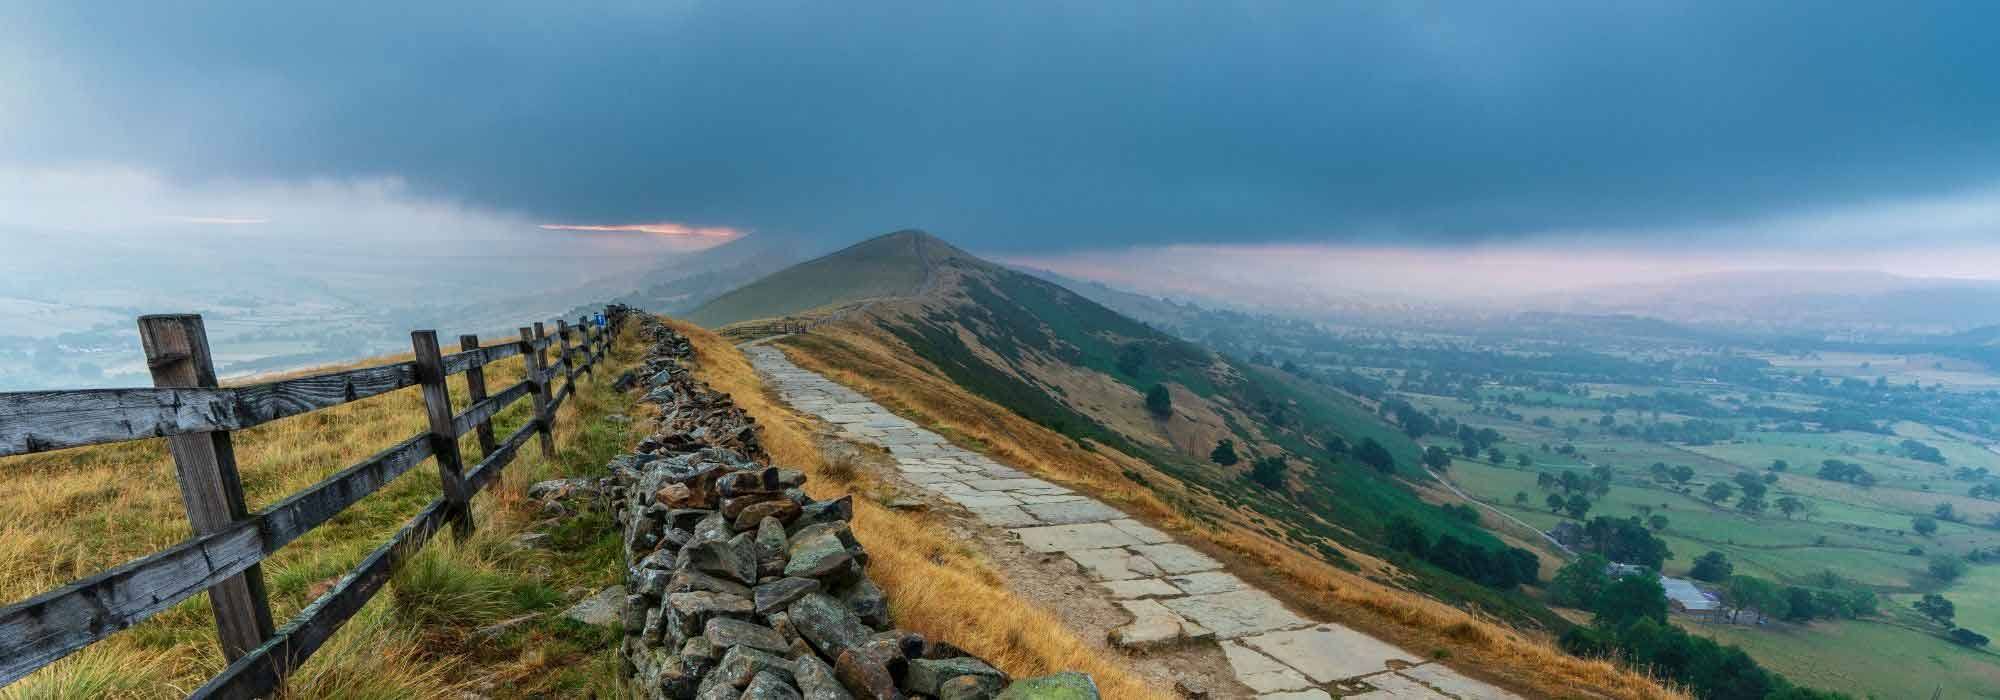 Mam Tor Hill a guide to climbing in the Peak District